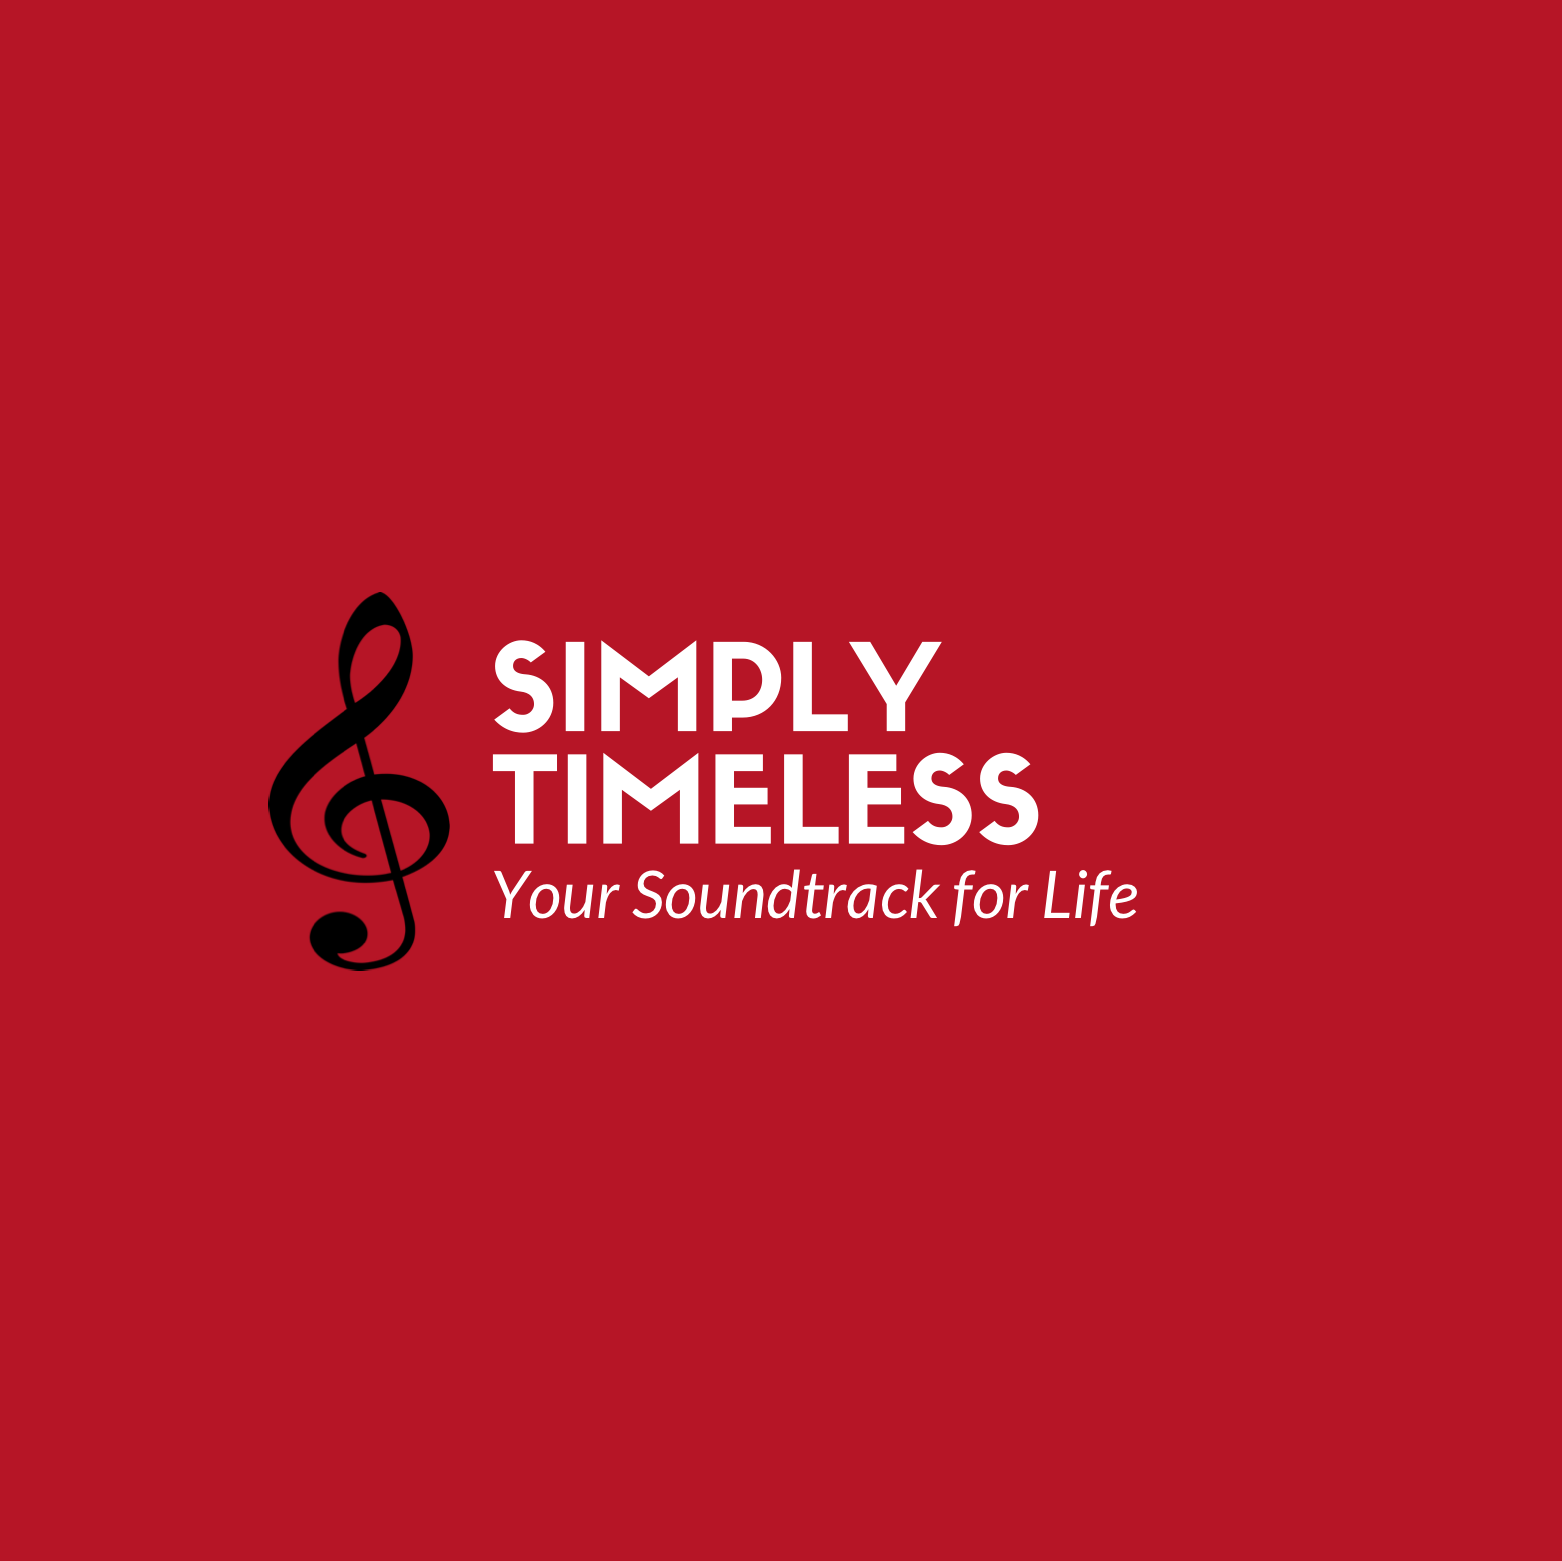 Simply_timeless_logo_png_small